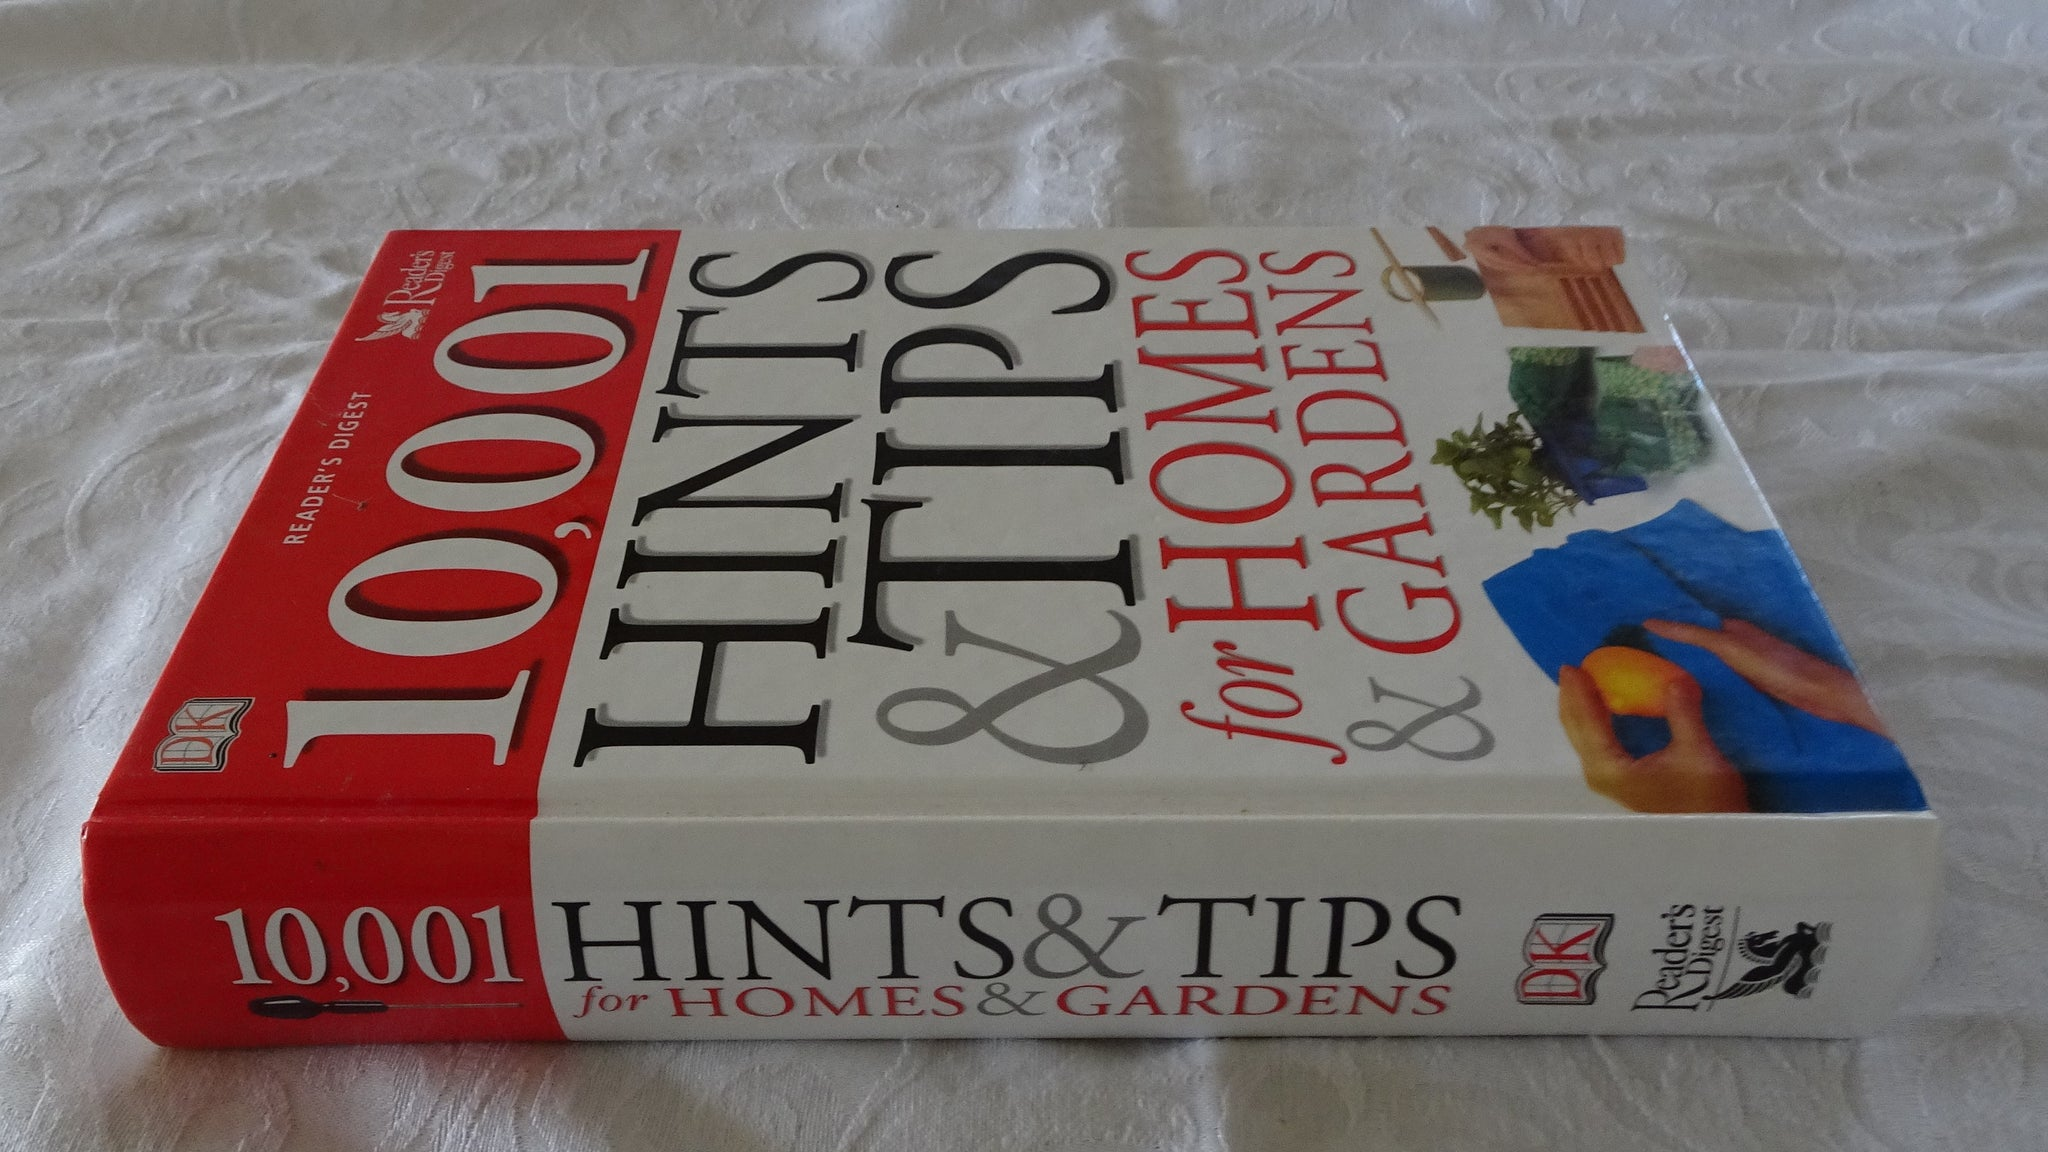 ... 10,001 Hints & Tips for Homes & Gardens ...